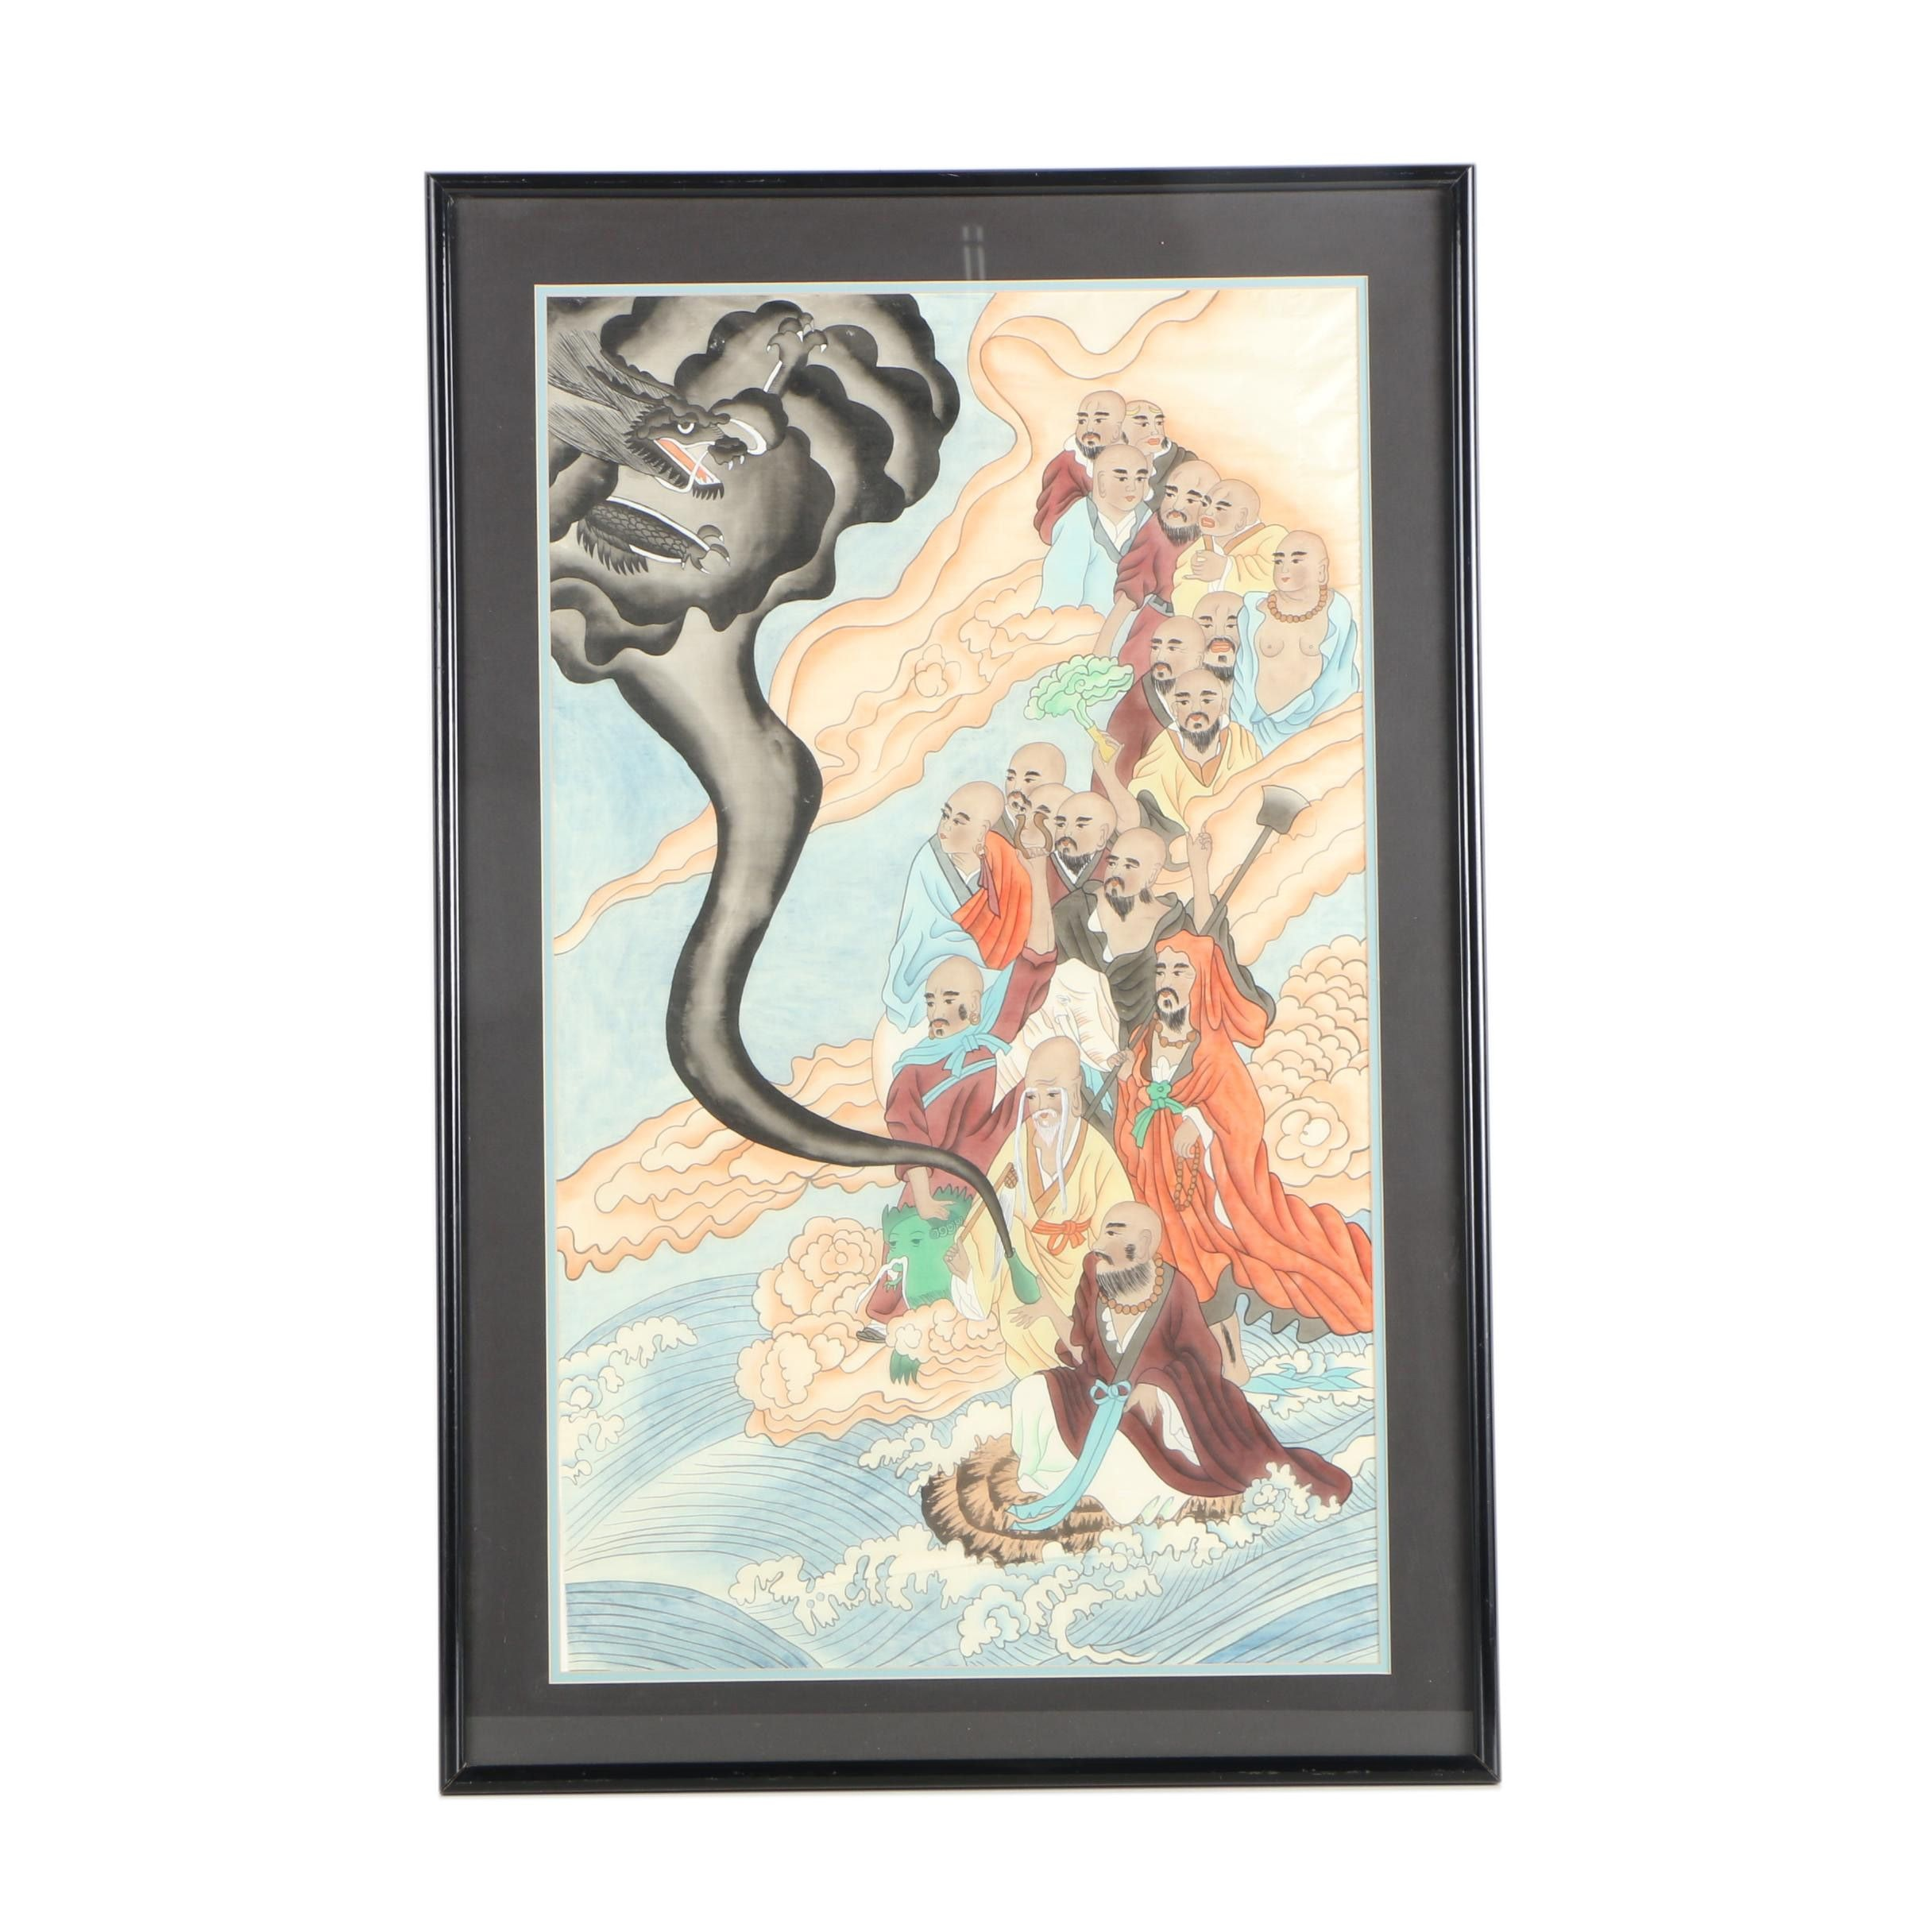 Chinese Style Watercolor Painting on Silk of Buddhist Scene